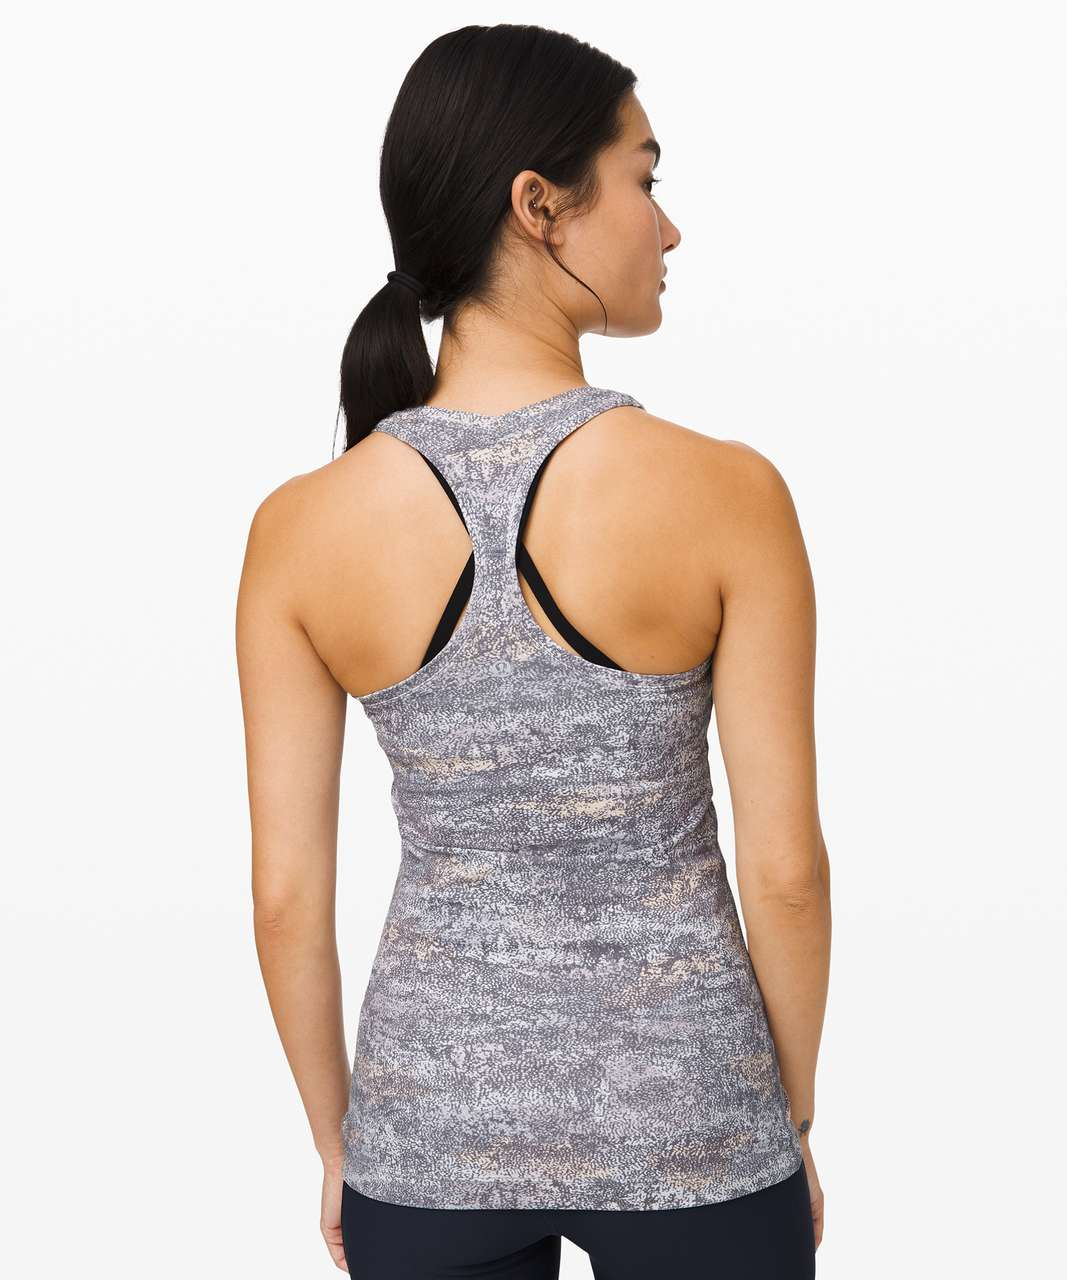 Lululemon Cool Racerback II *Nulu - Frozen Vista Alpine White Multi